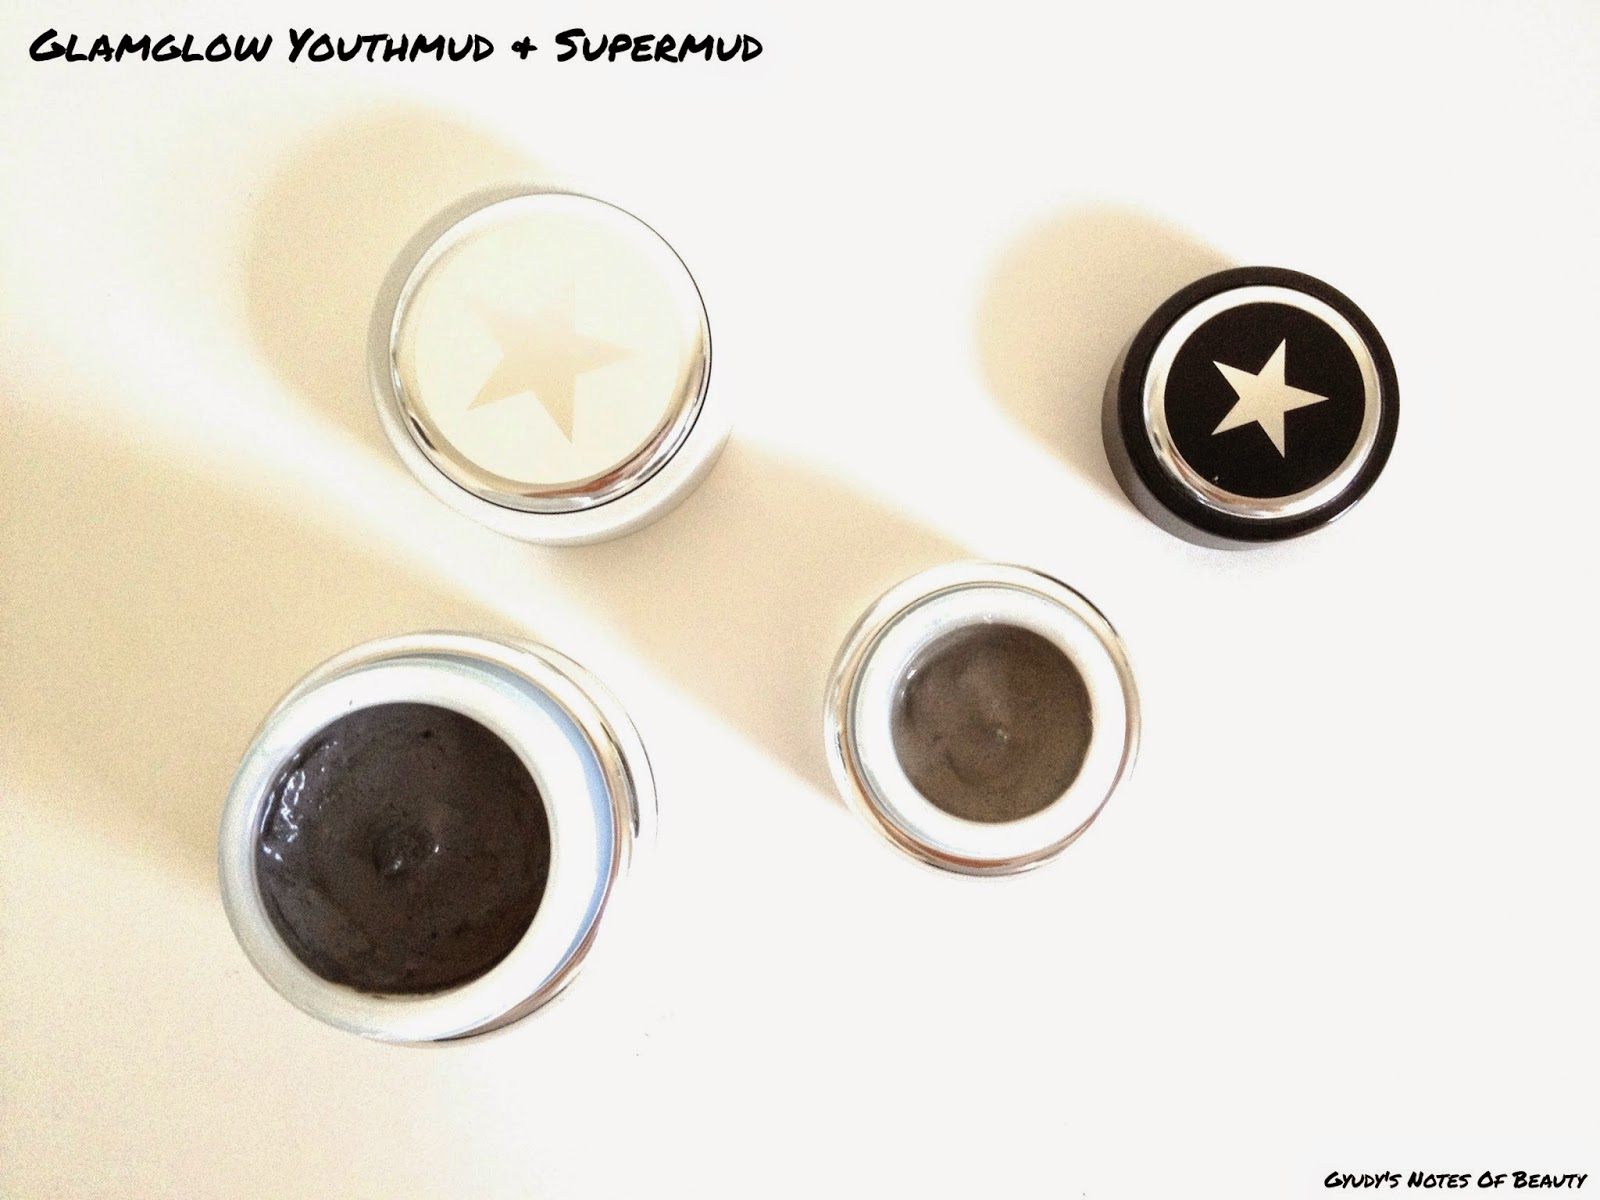 Glamglow Youthmud Supermud